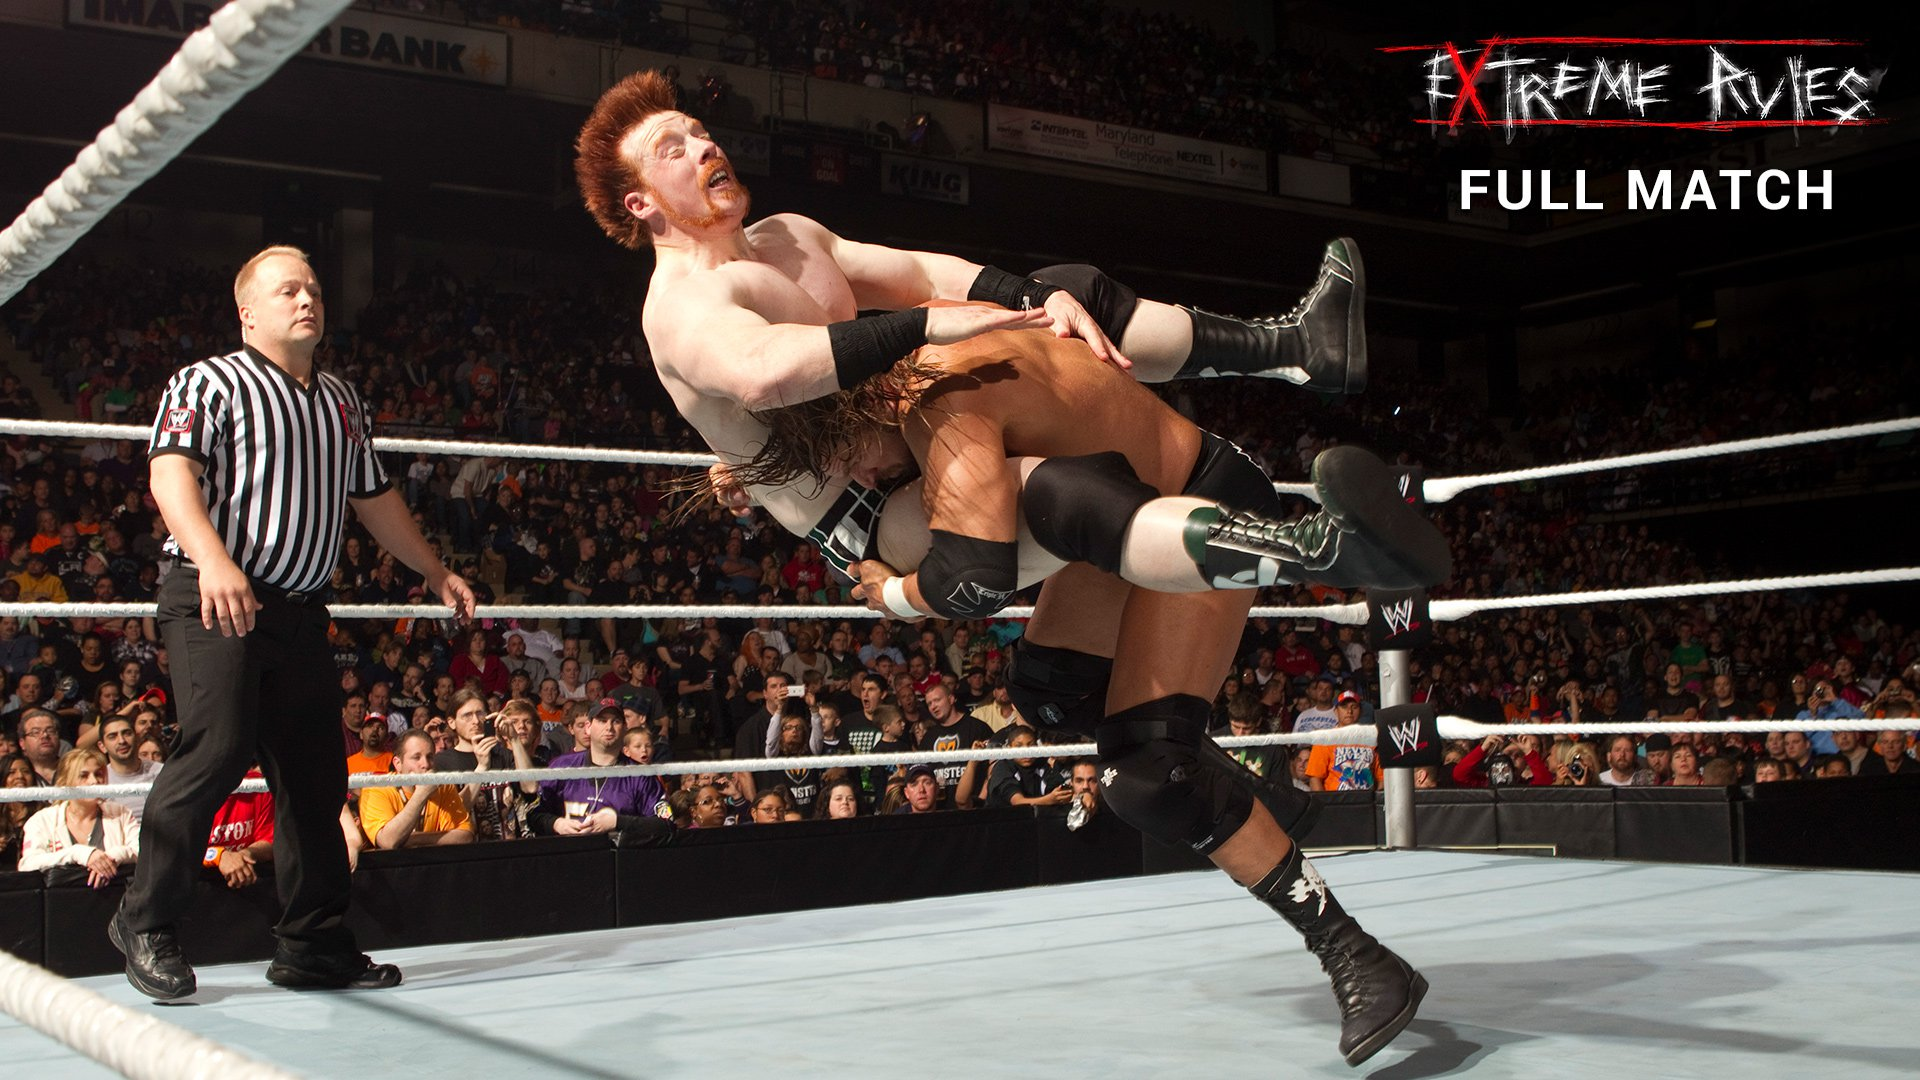 Image result for extreme rules 2010 sheamus